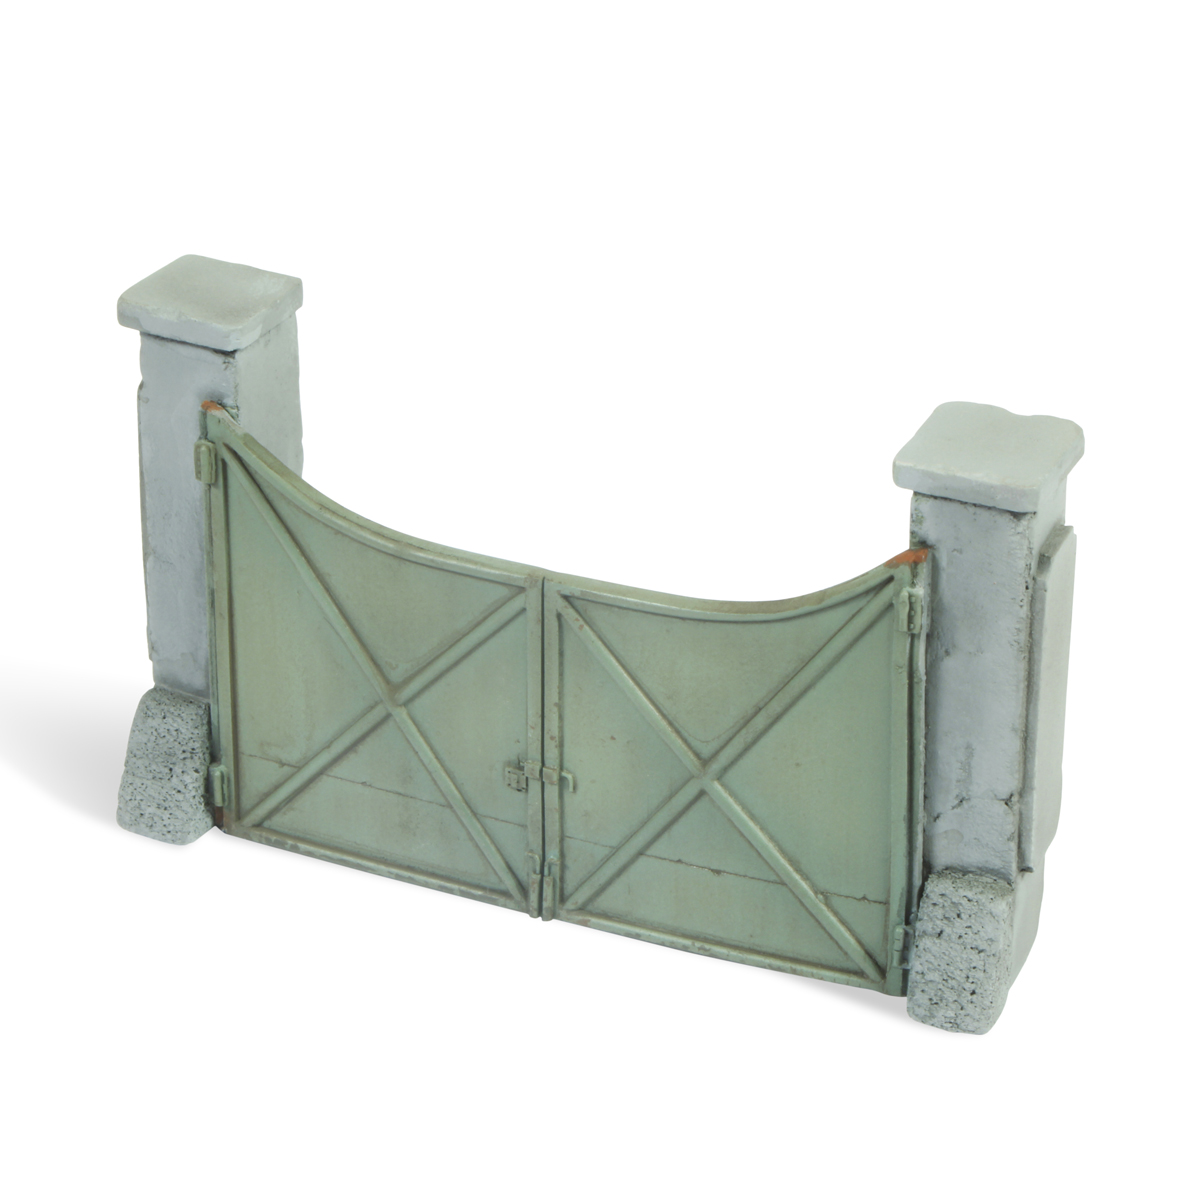 Industrial Gate 1:72